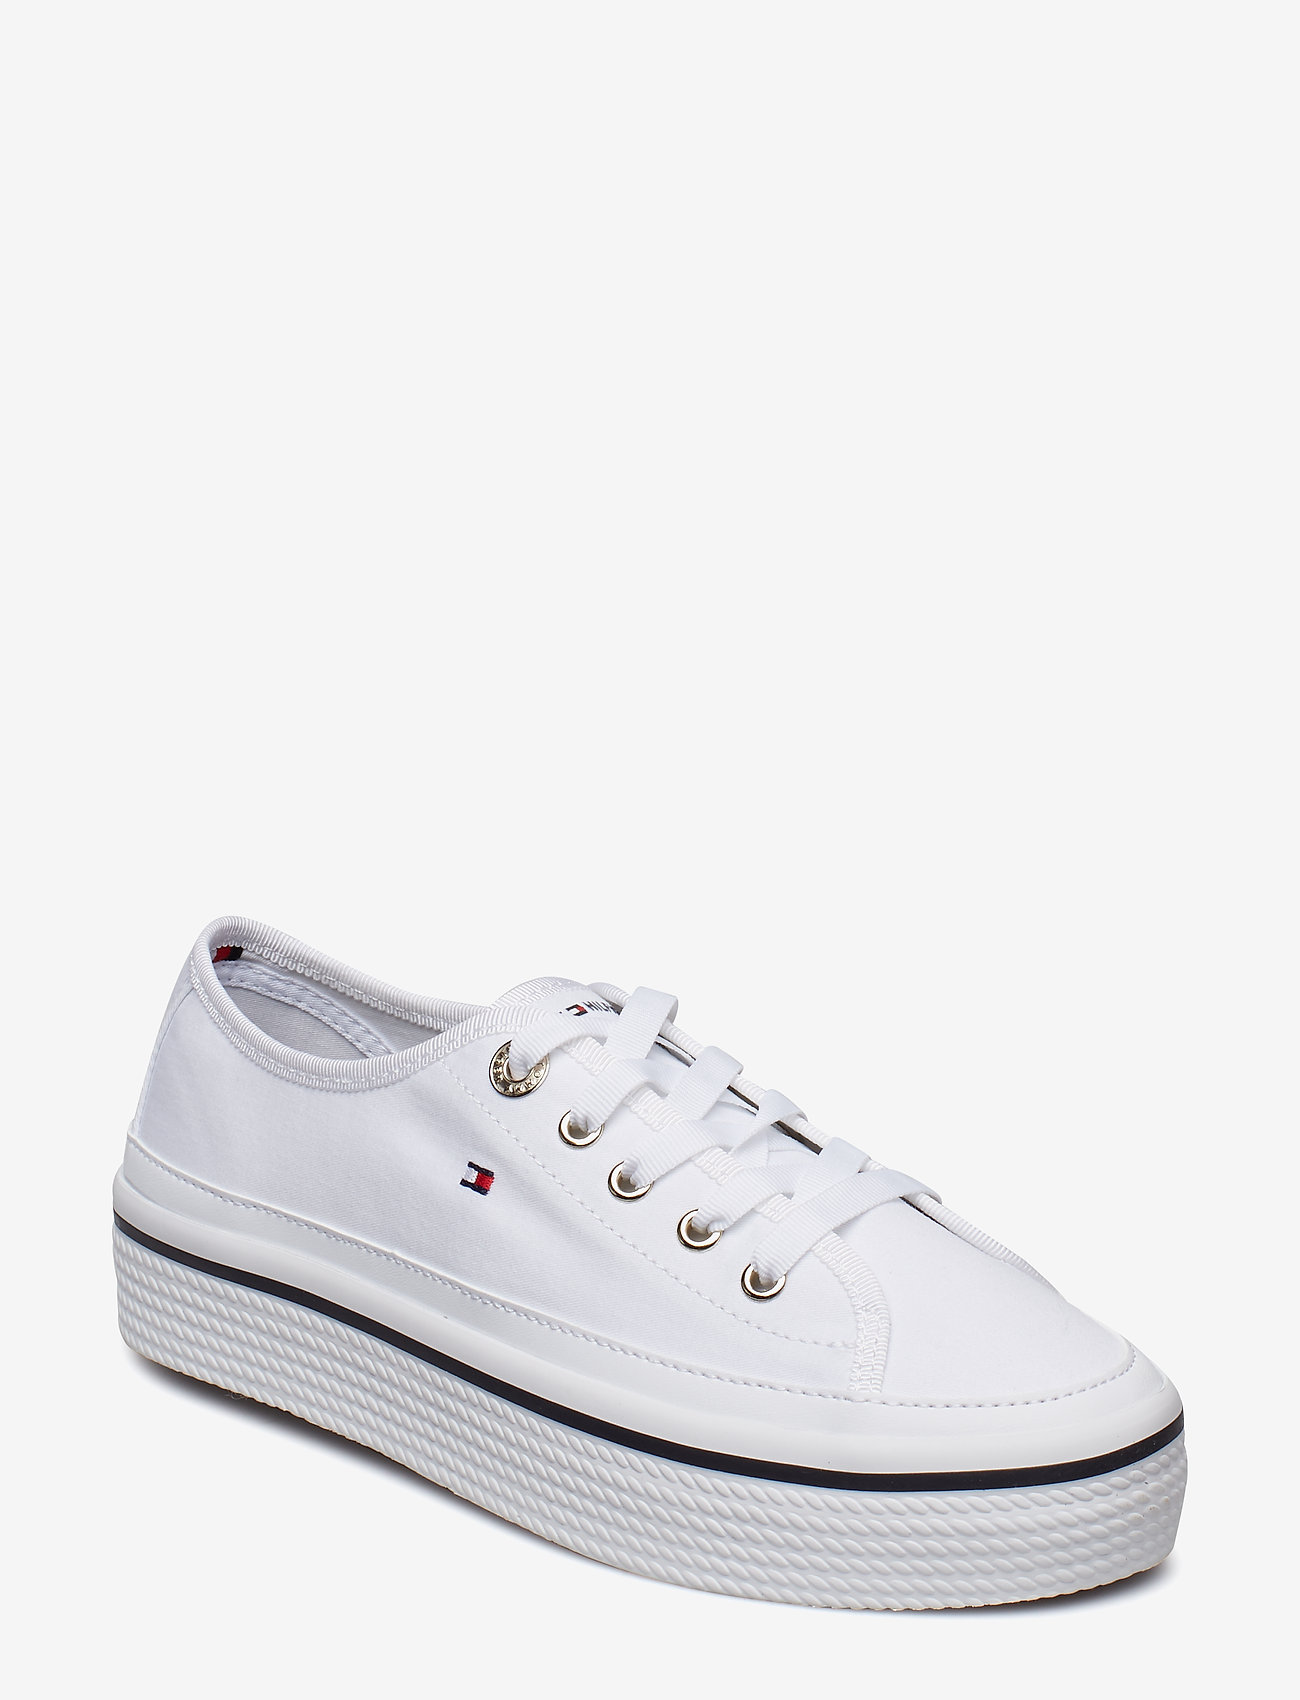 Tommy Hilfiger - CORPORATE FLATFORM SNEAKER - low top sneakers - white - 0